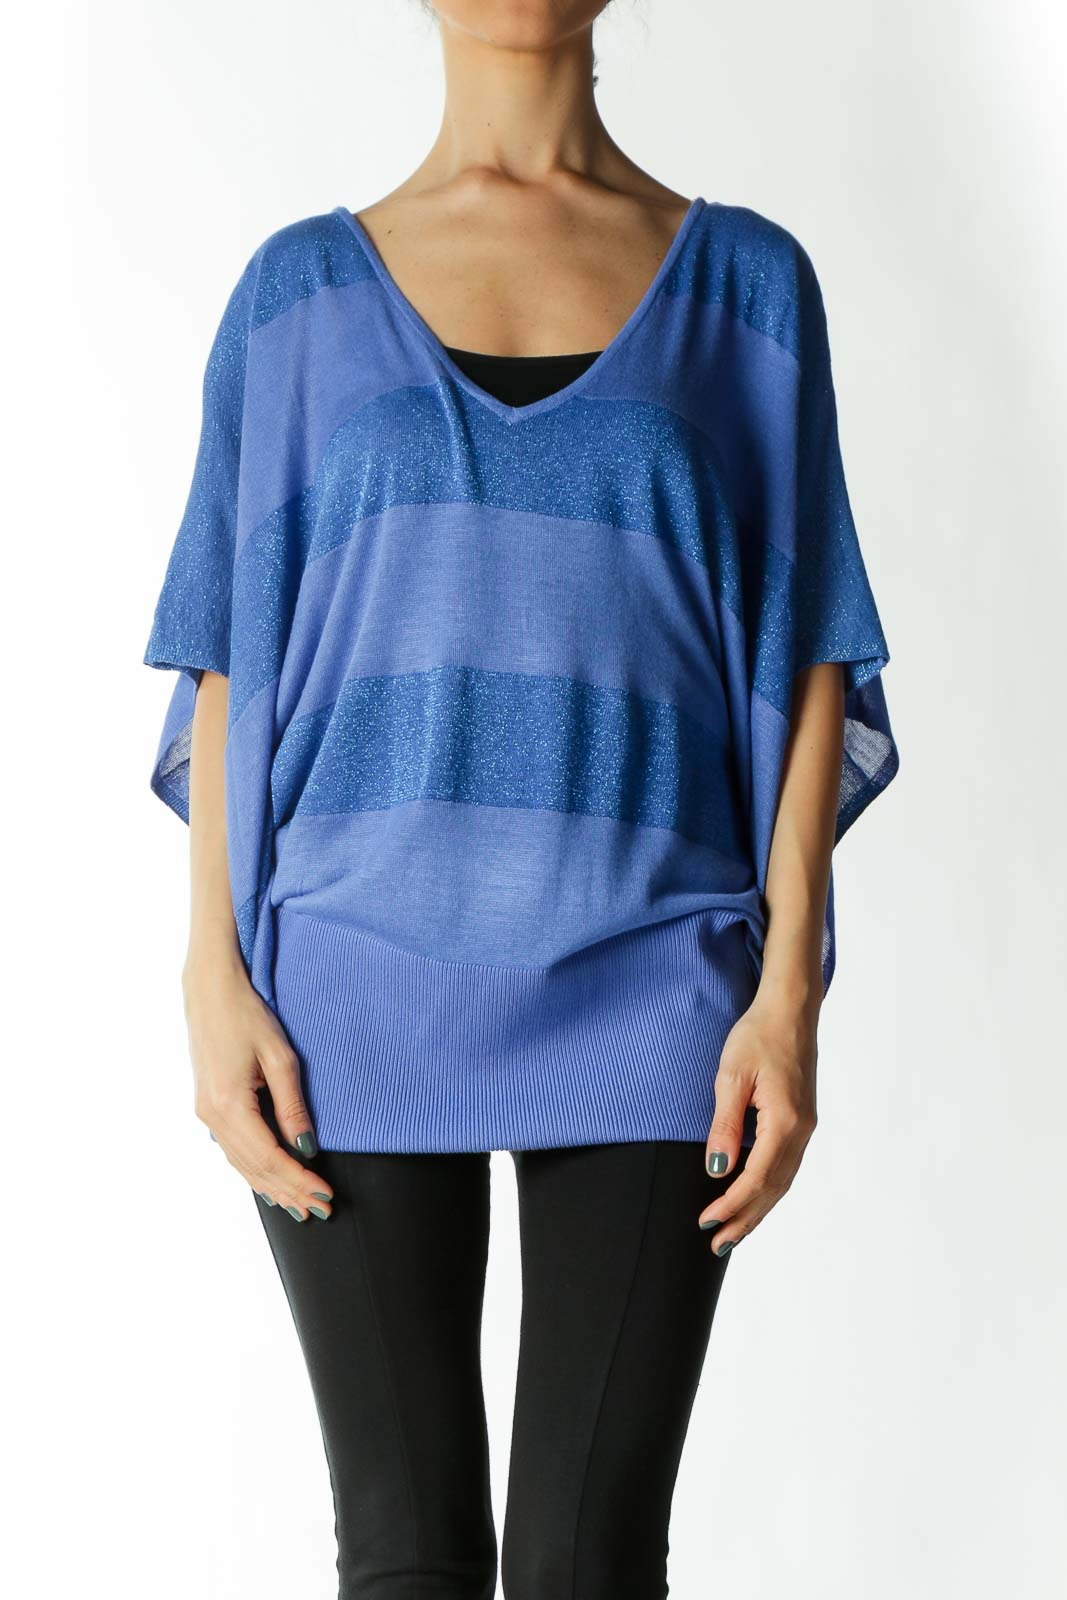 Blue Metallic Striped Shirt with Bat Sleeves